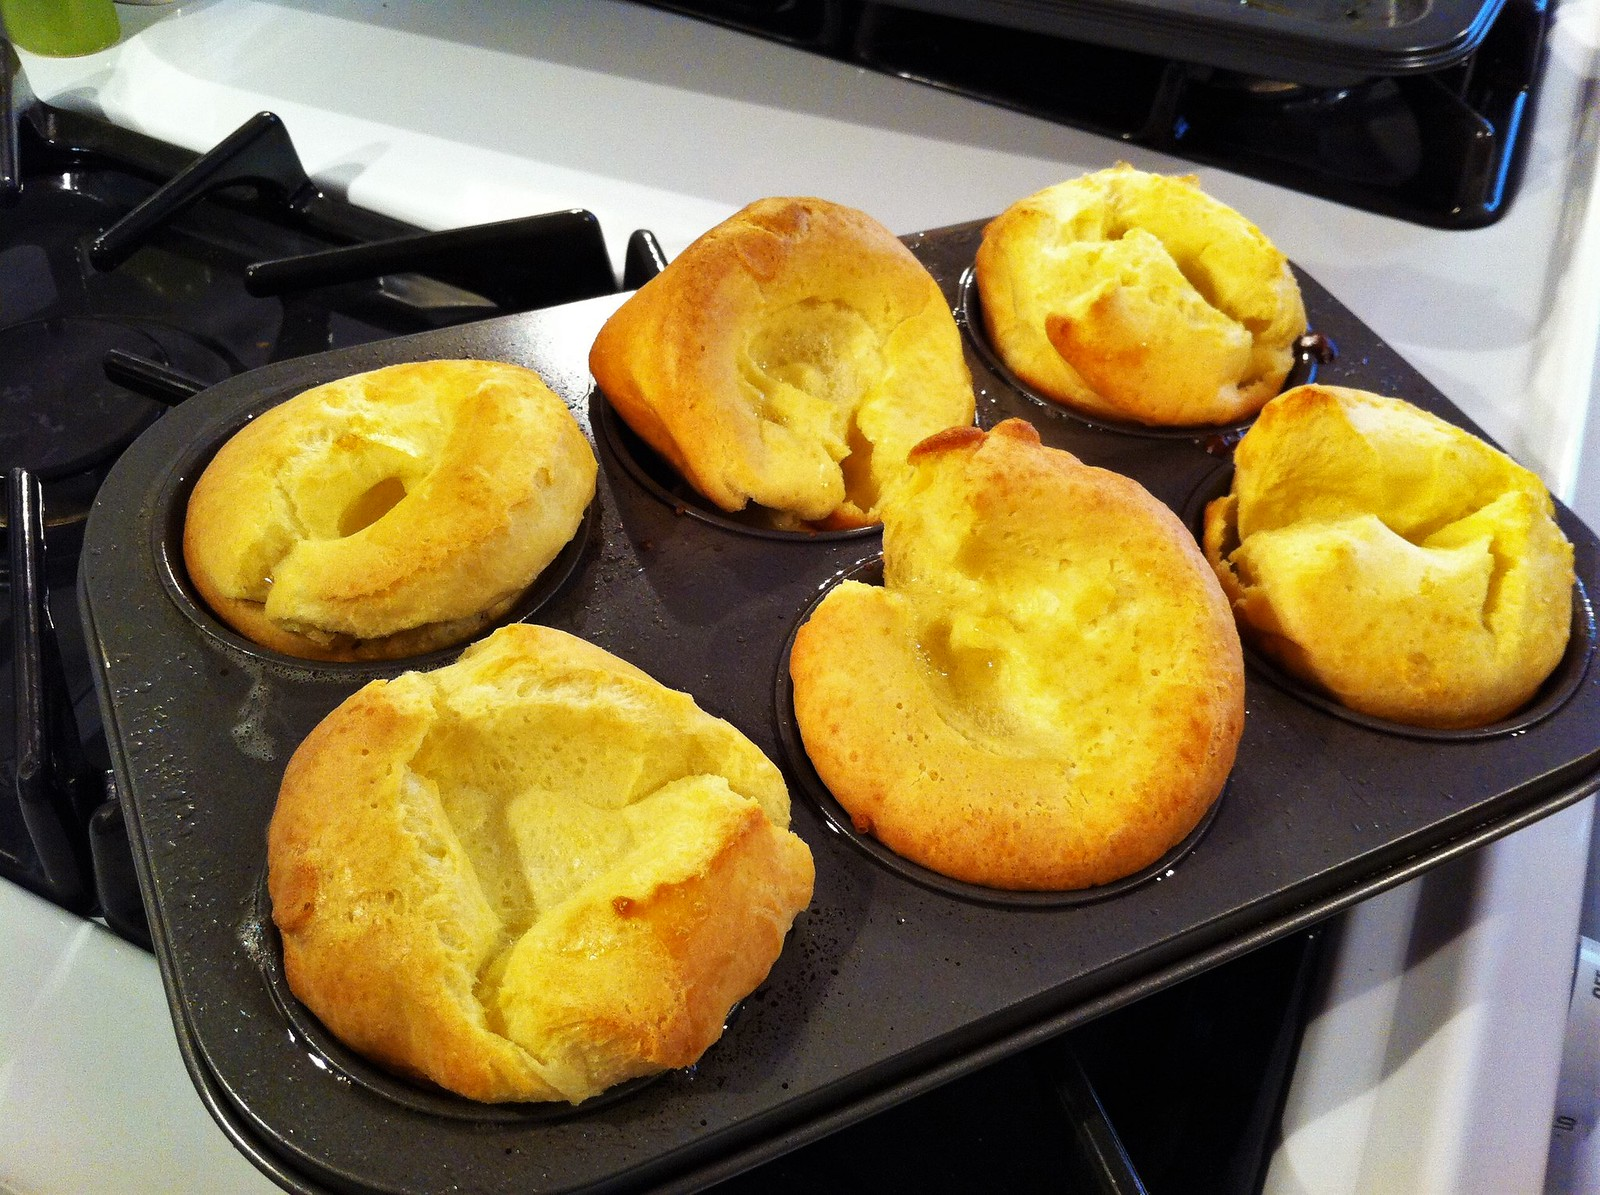 Yorshire Puddings. Credit skevbo, flickr